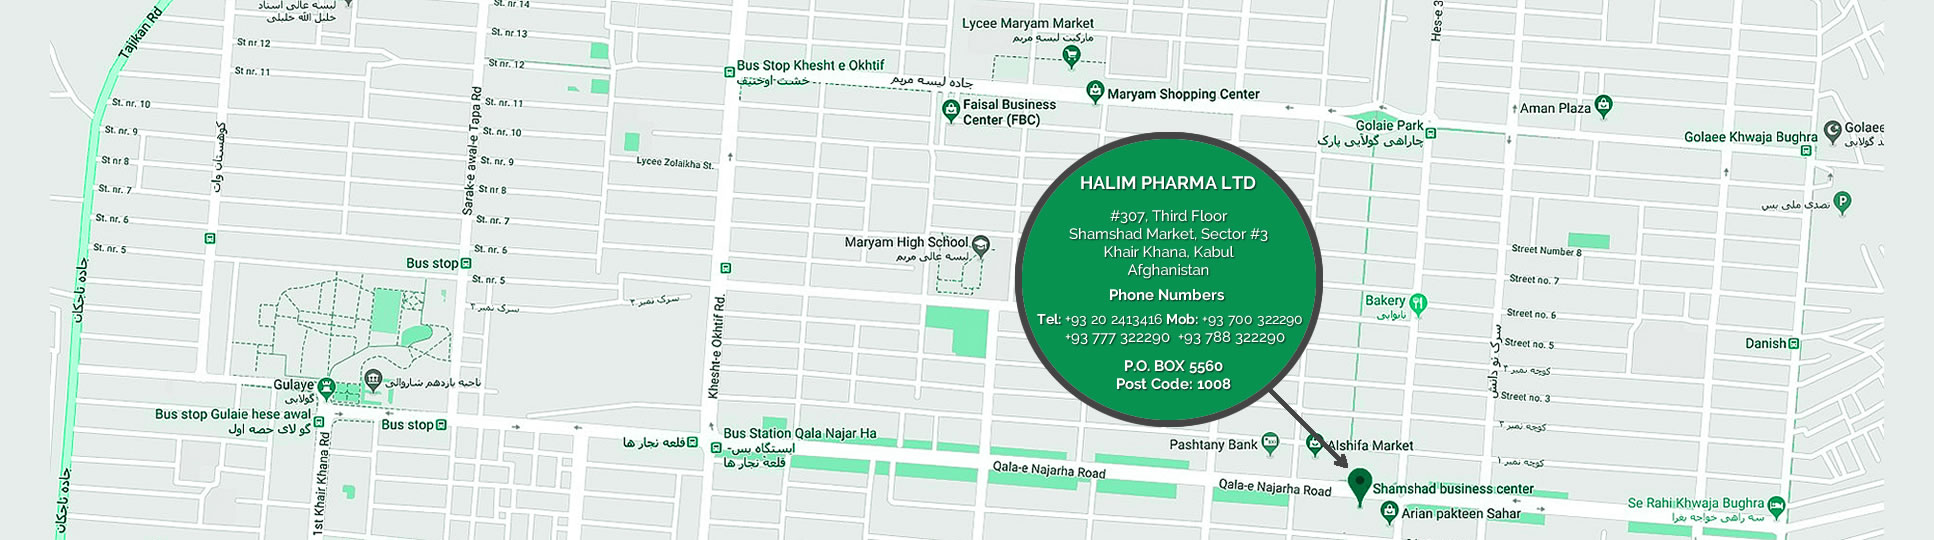 halim-pharma-address-directions-map